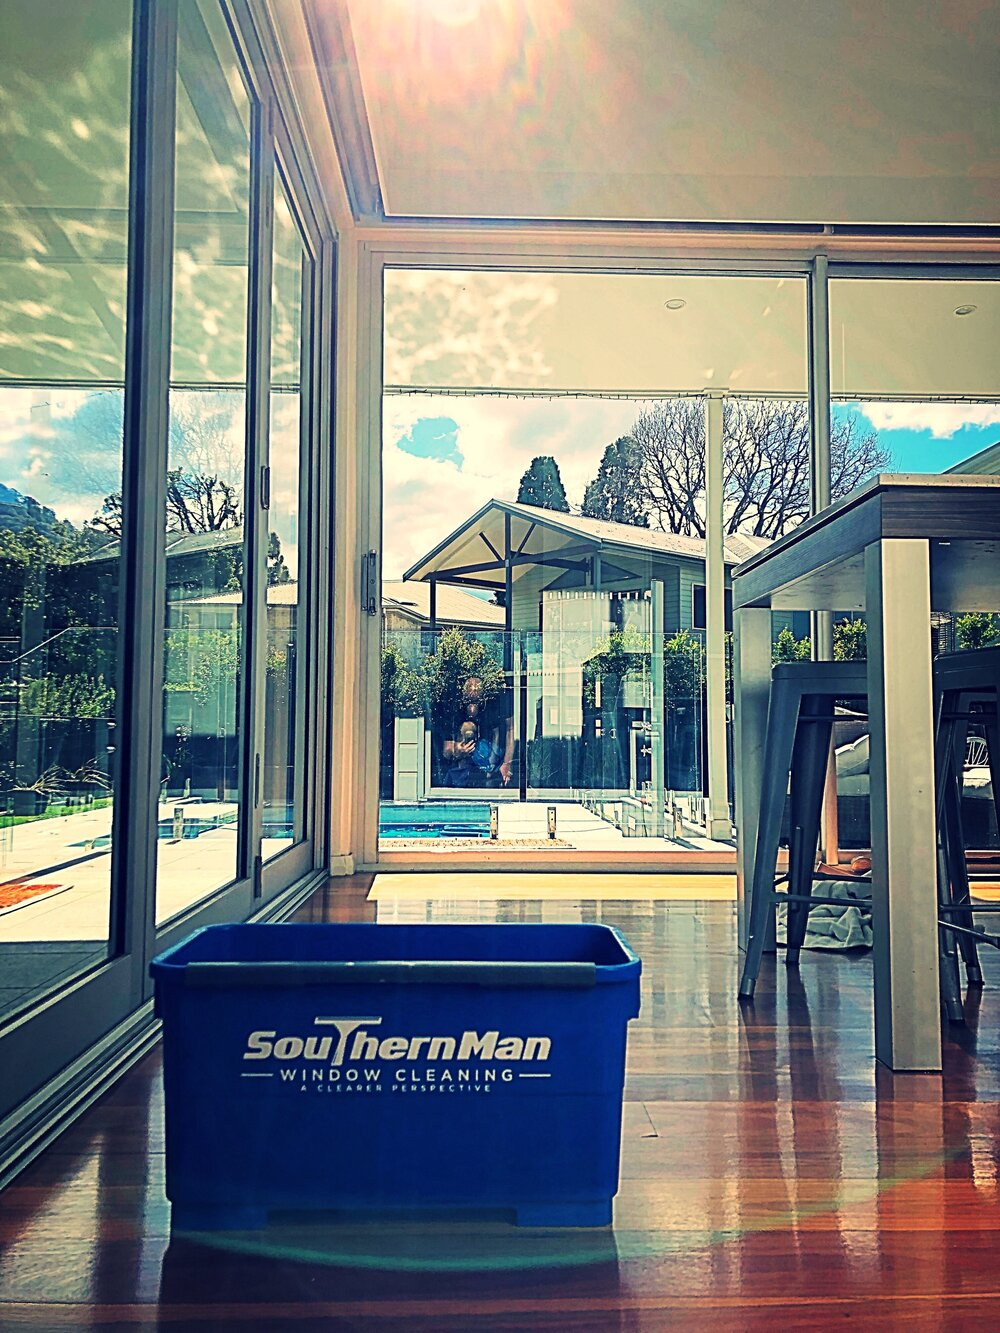 Southern Man - Residential Window Cleaning Services Illawarra, Wollongong, Shellharbour, Kiama